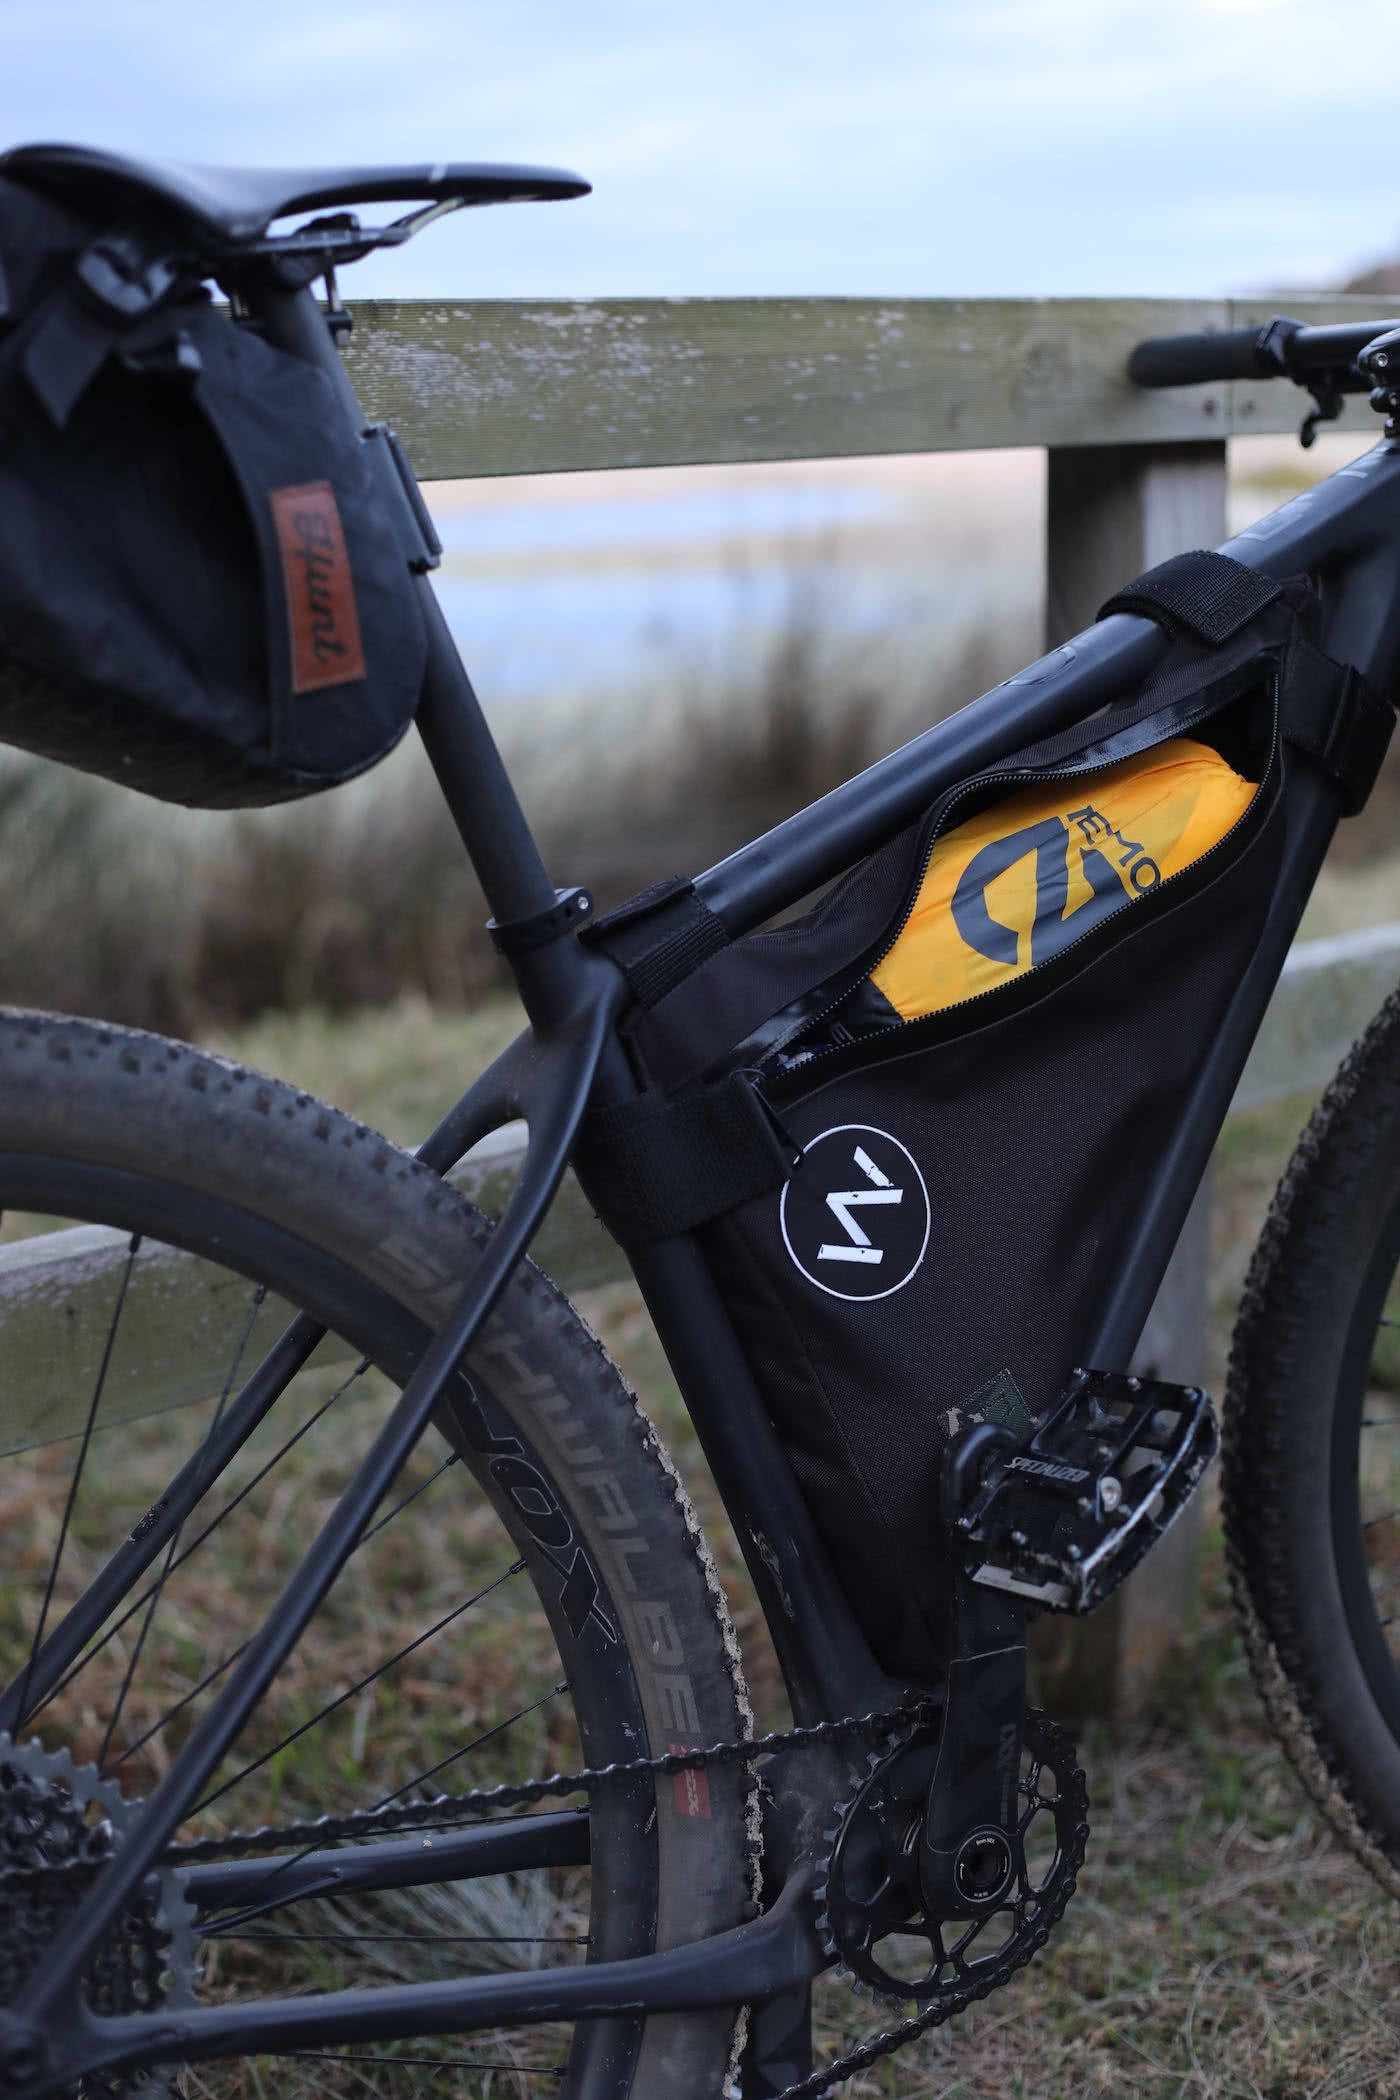 NEMO Kyan Mummy Bag & Tensor Ultralight Sleeping Pad // Gear Review by Mattie Gould Tensor mat in a bike bag